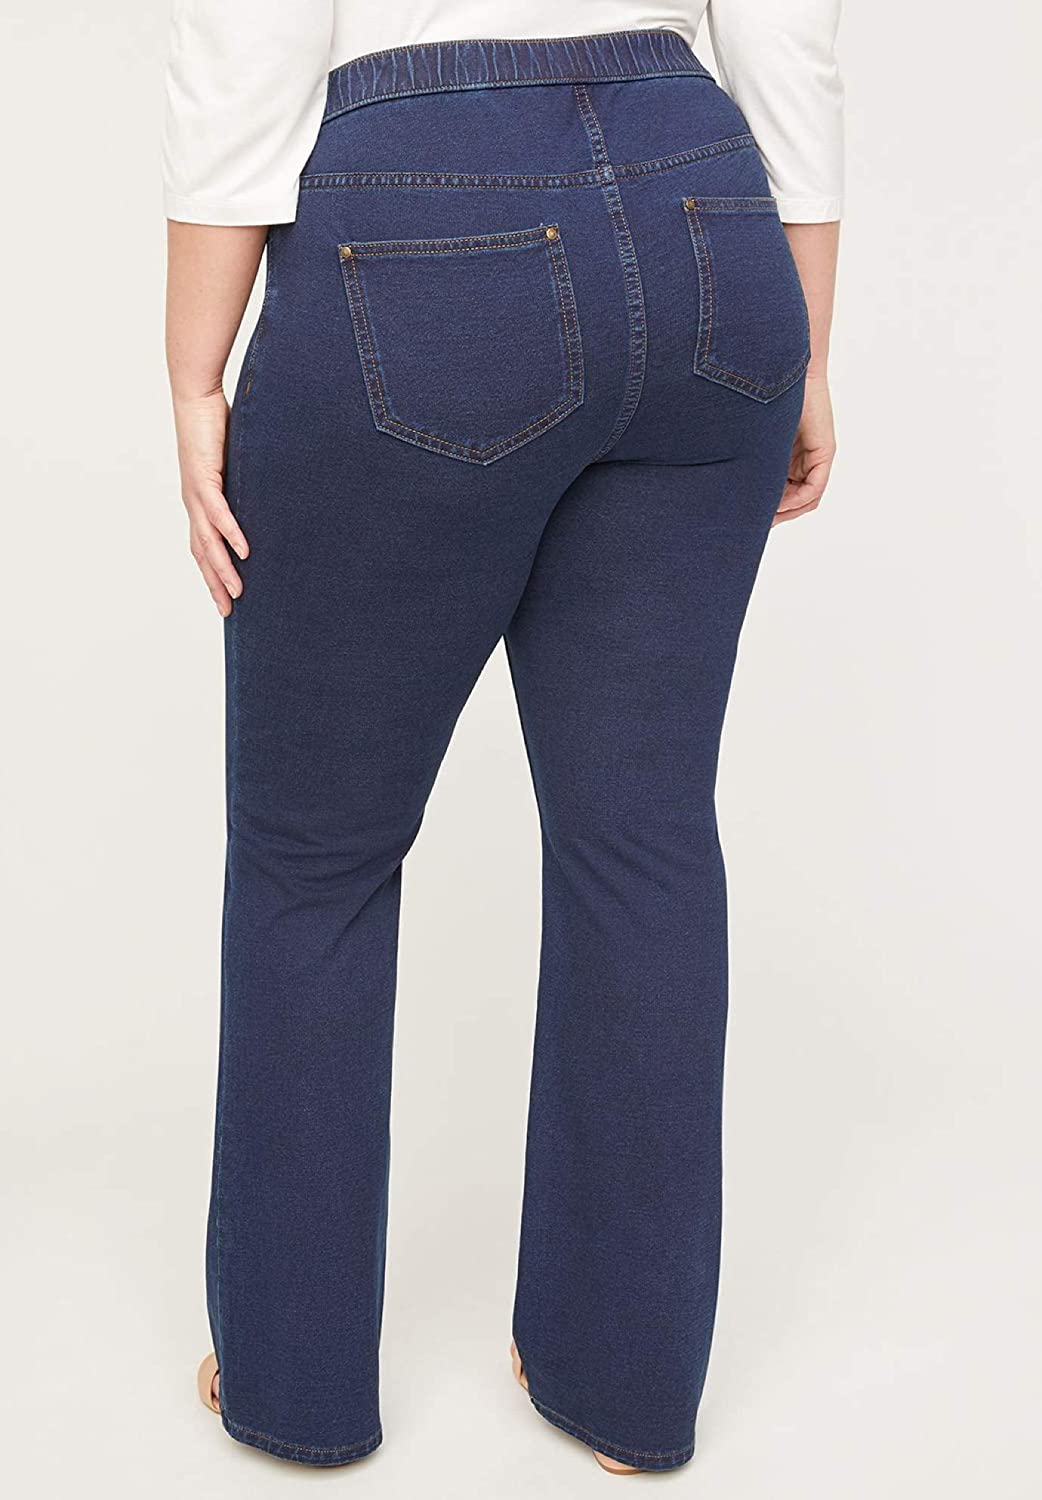 Catherines Women's Plus Size The Bootcut Knit Jean